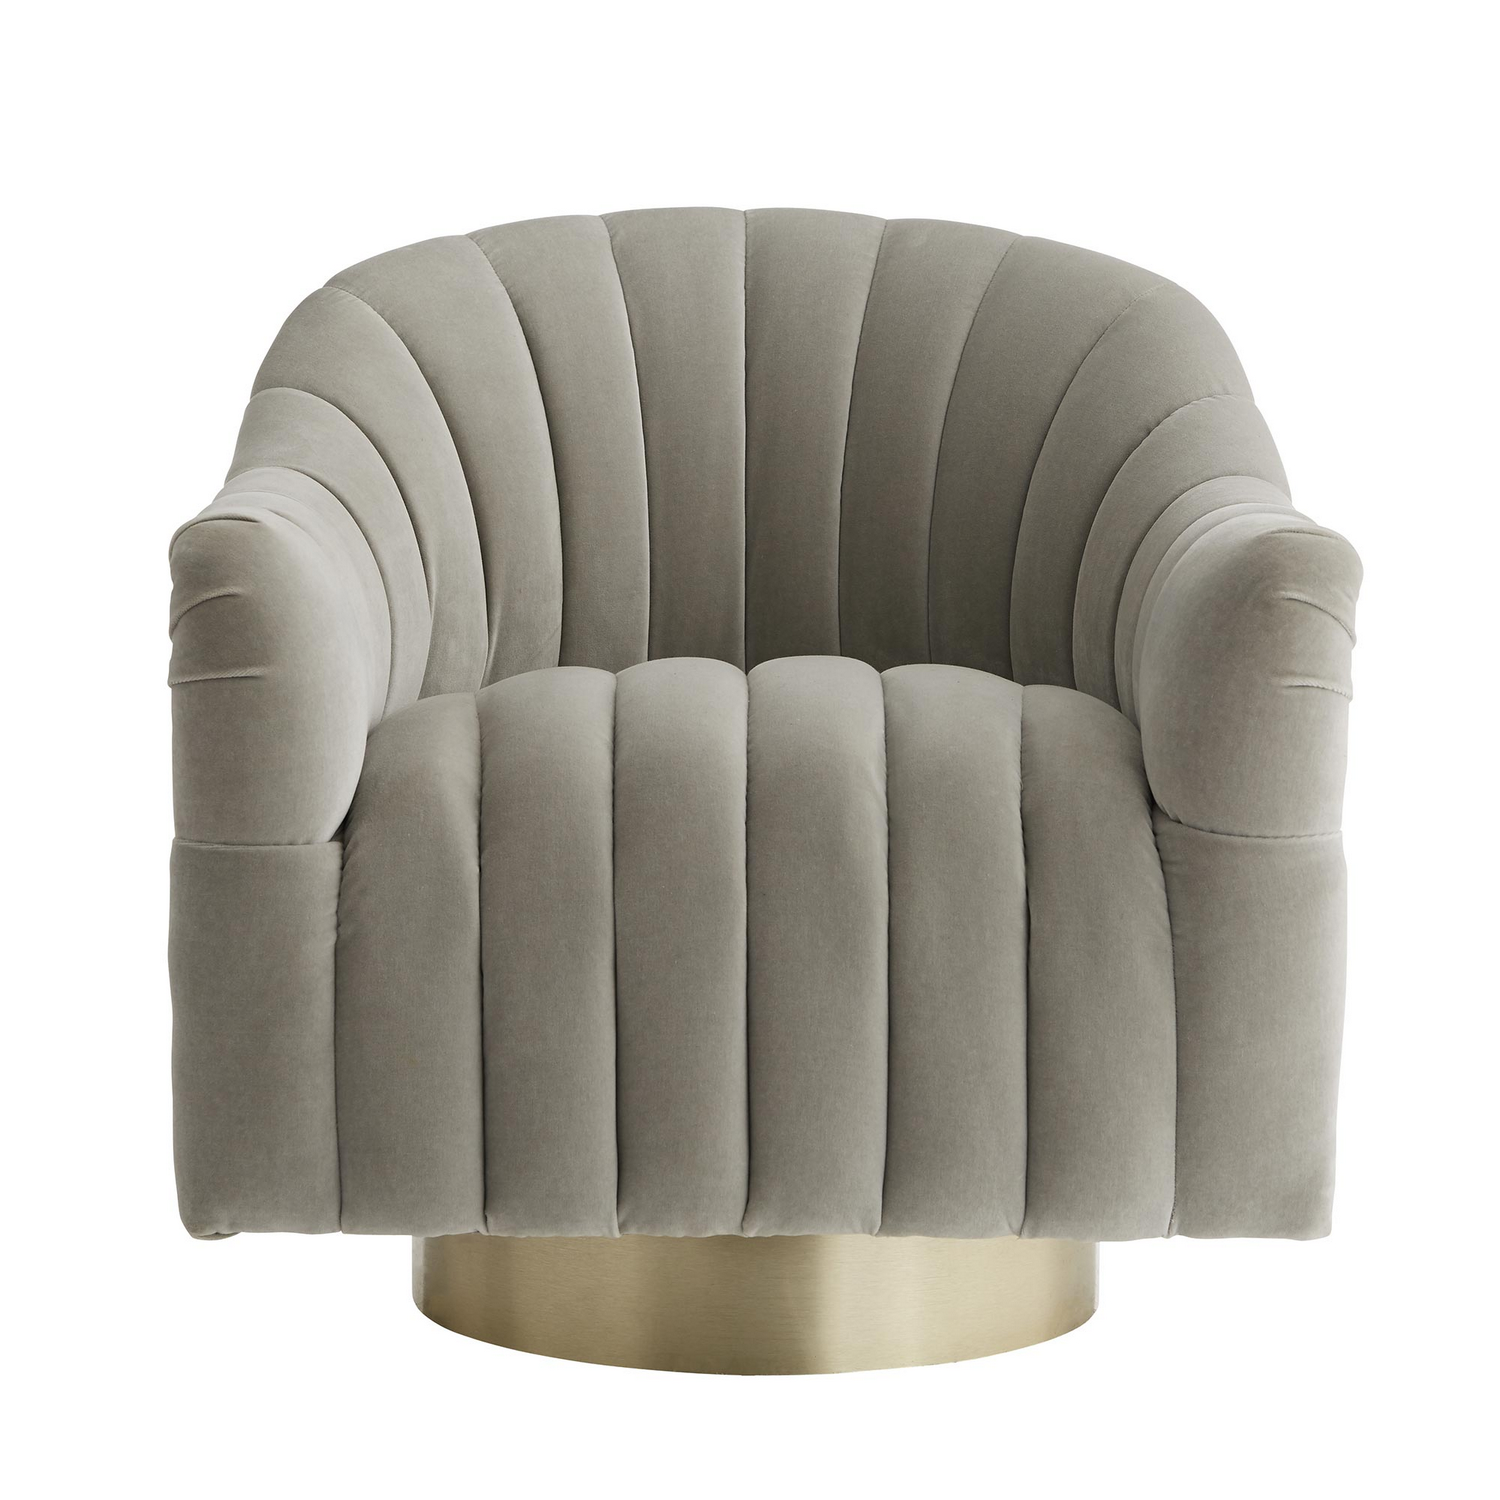 Chair by Arteriors 8035